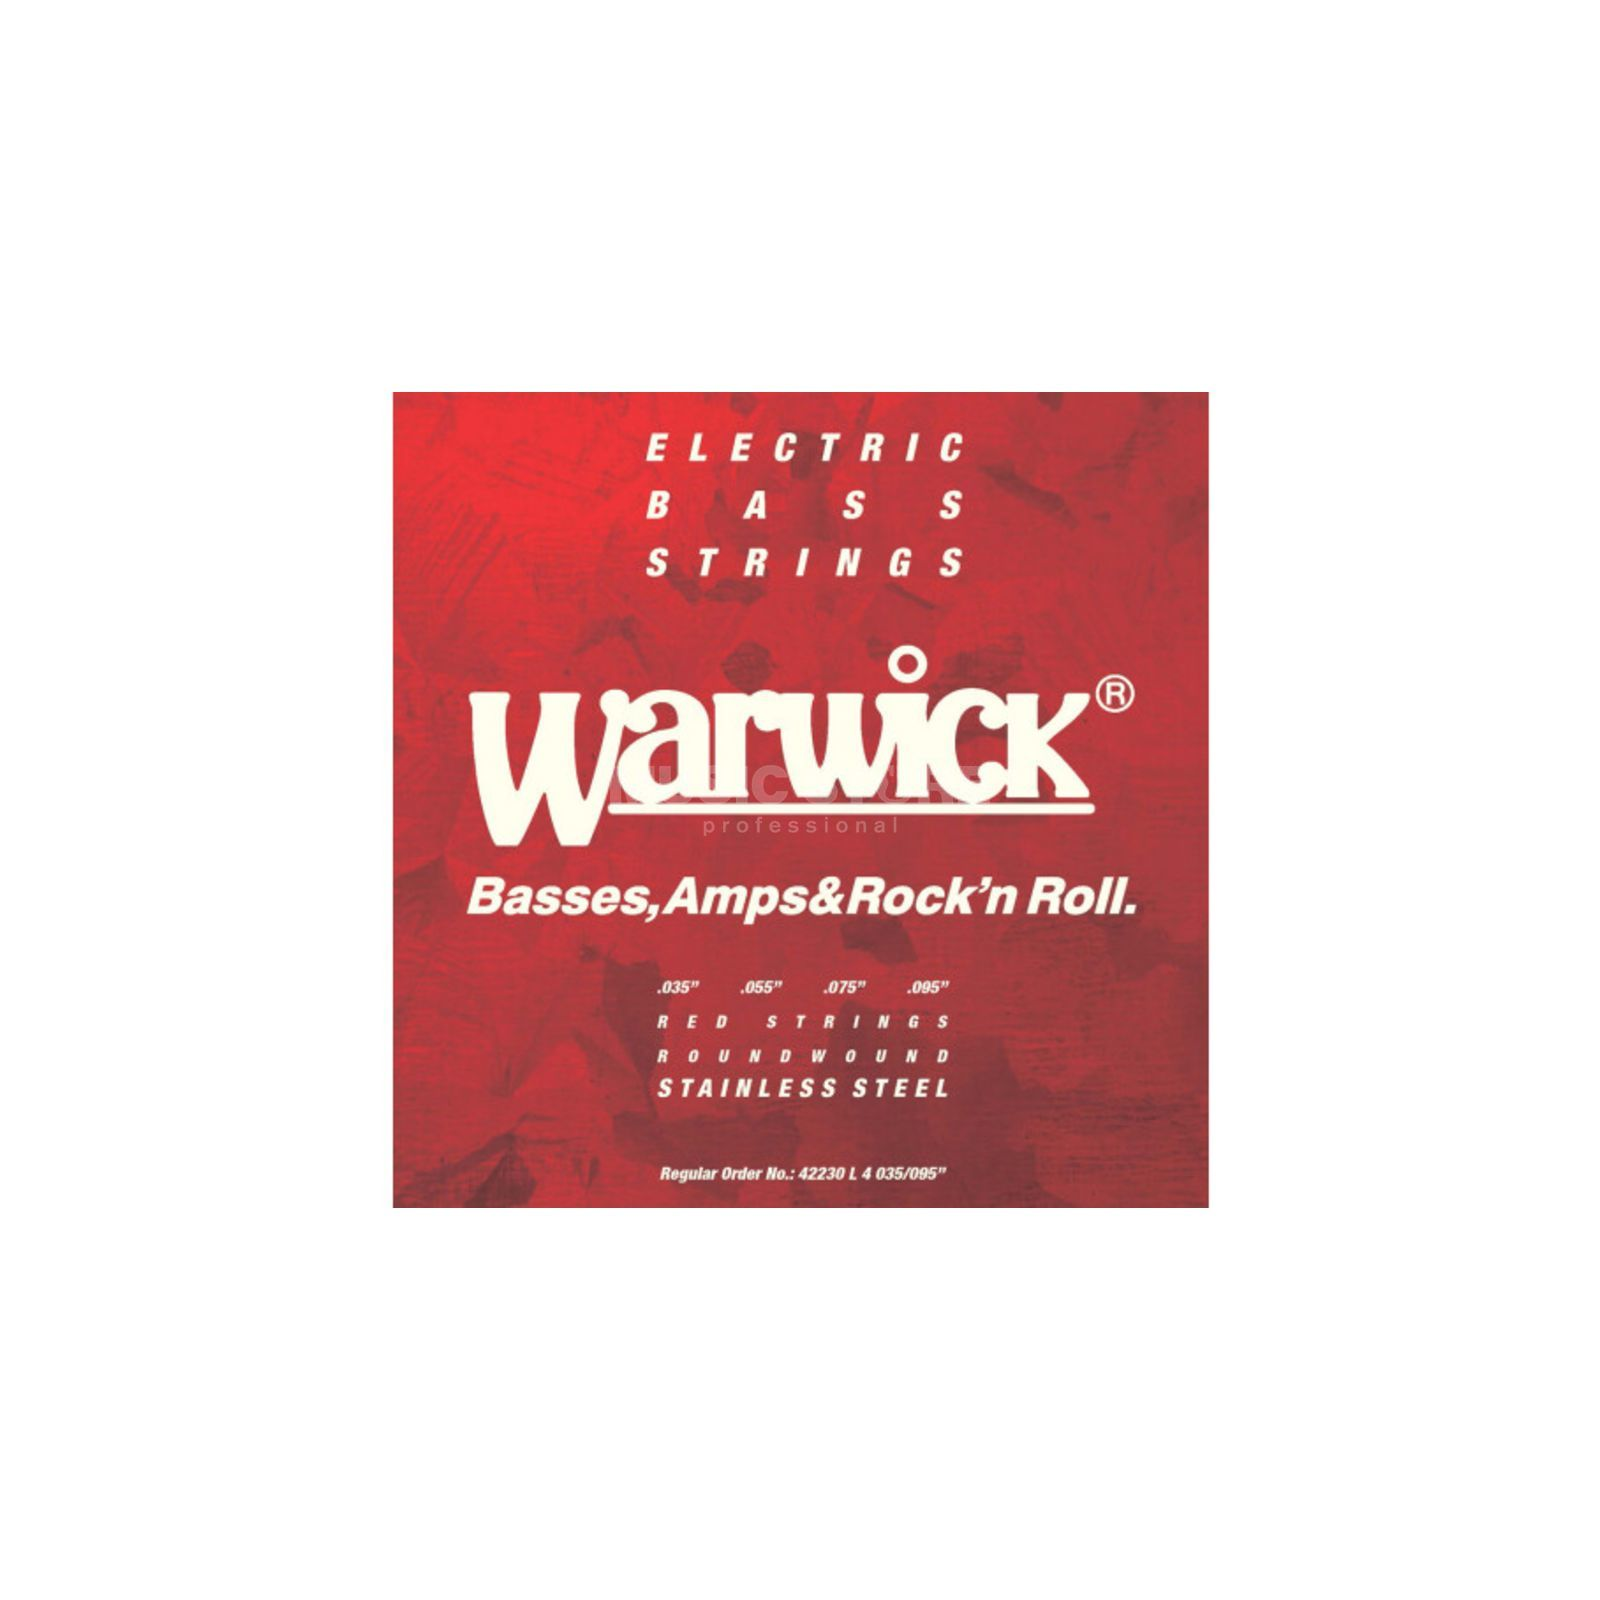 Warwick Bass Strings, 35-95,Red 4 string set, Stainless Steel Product Image